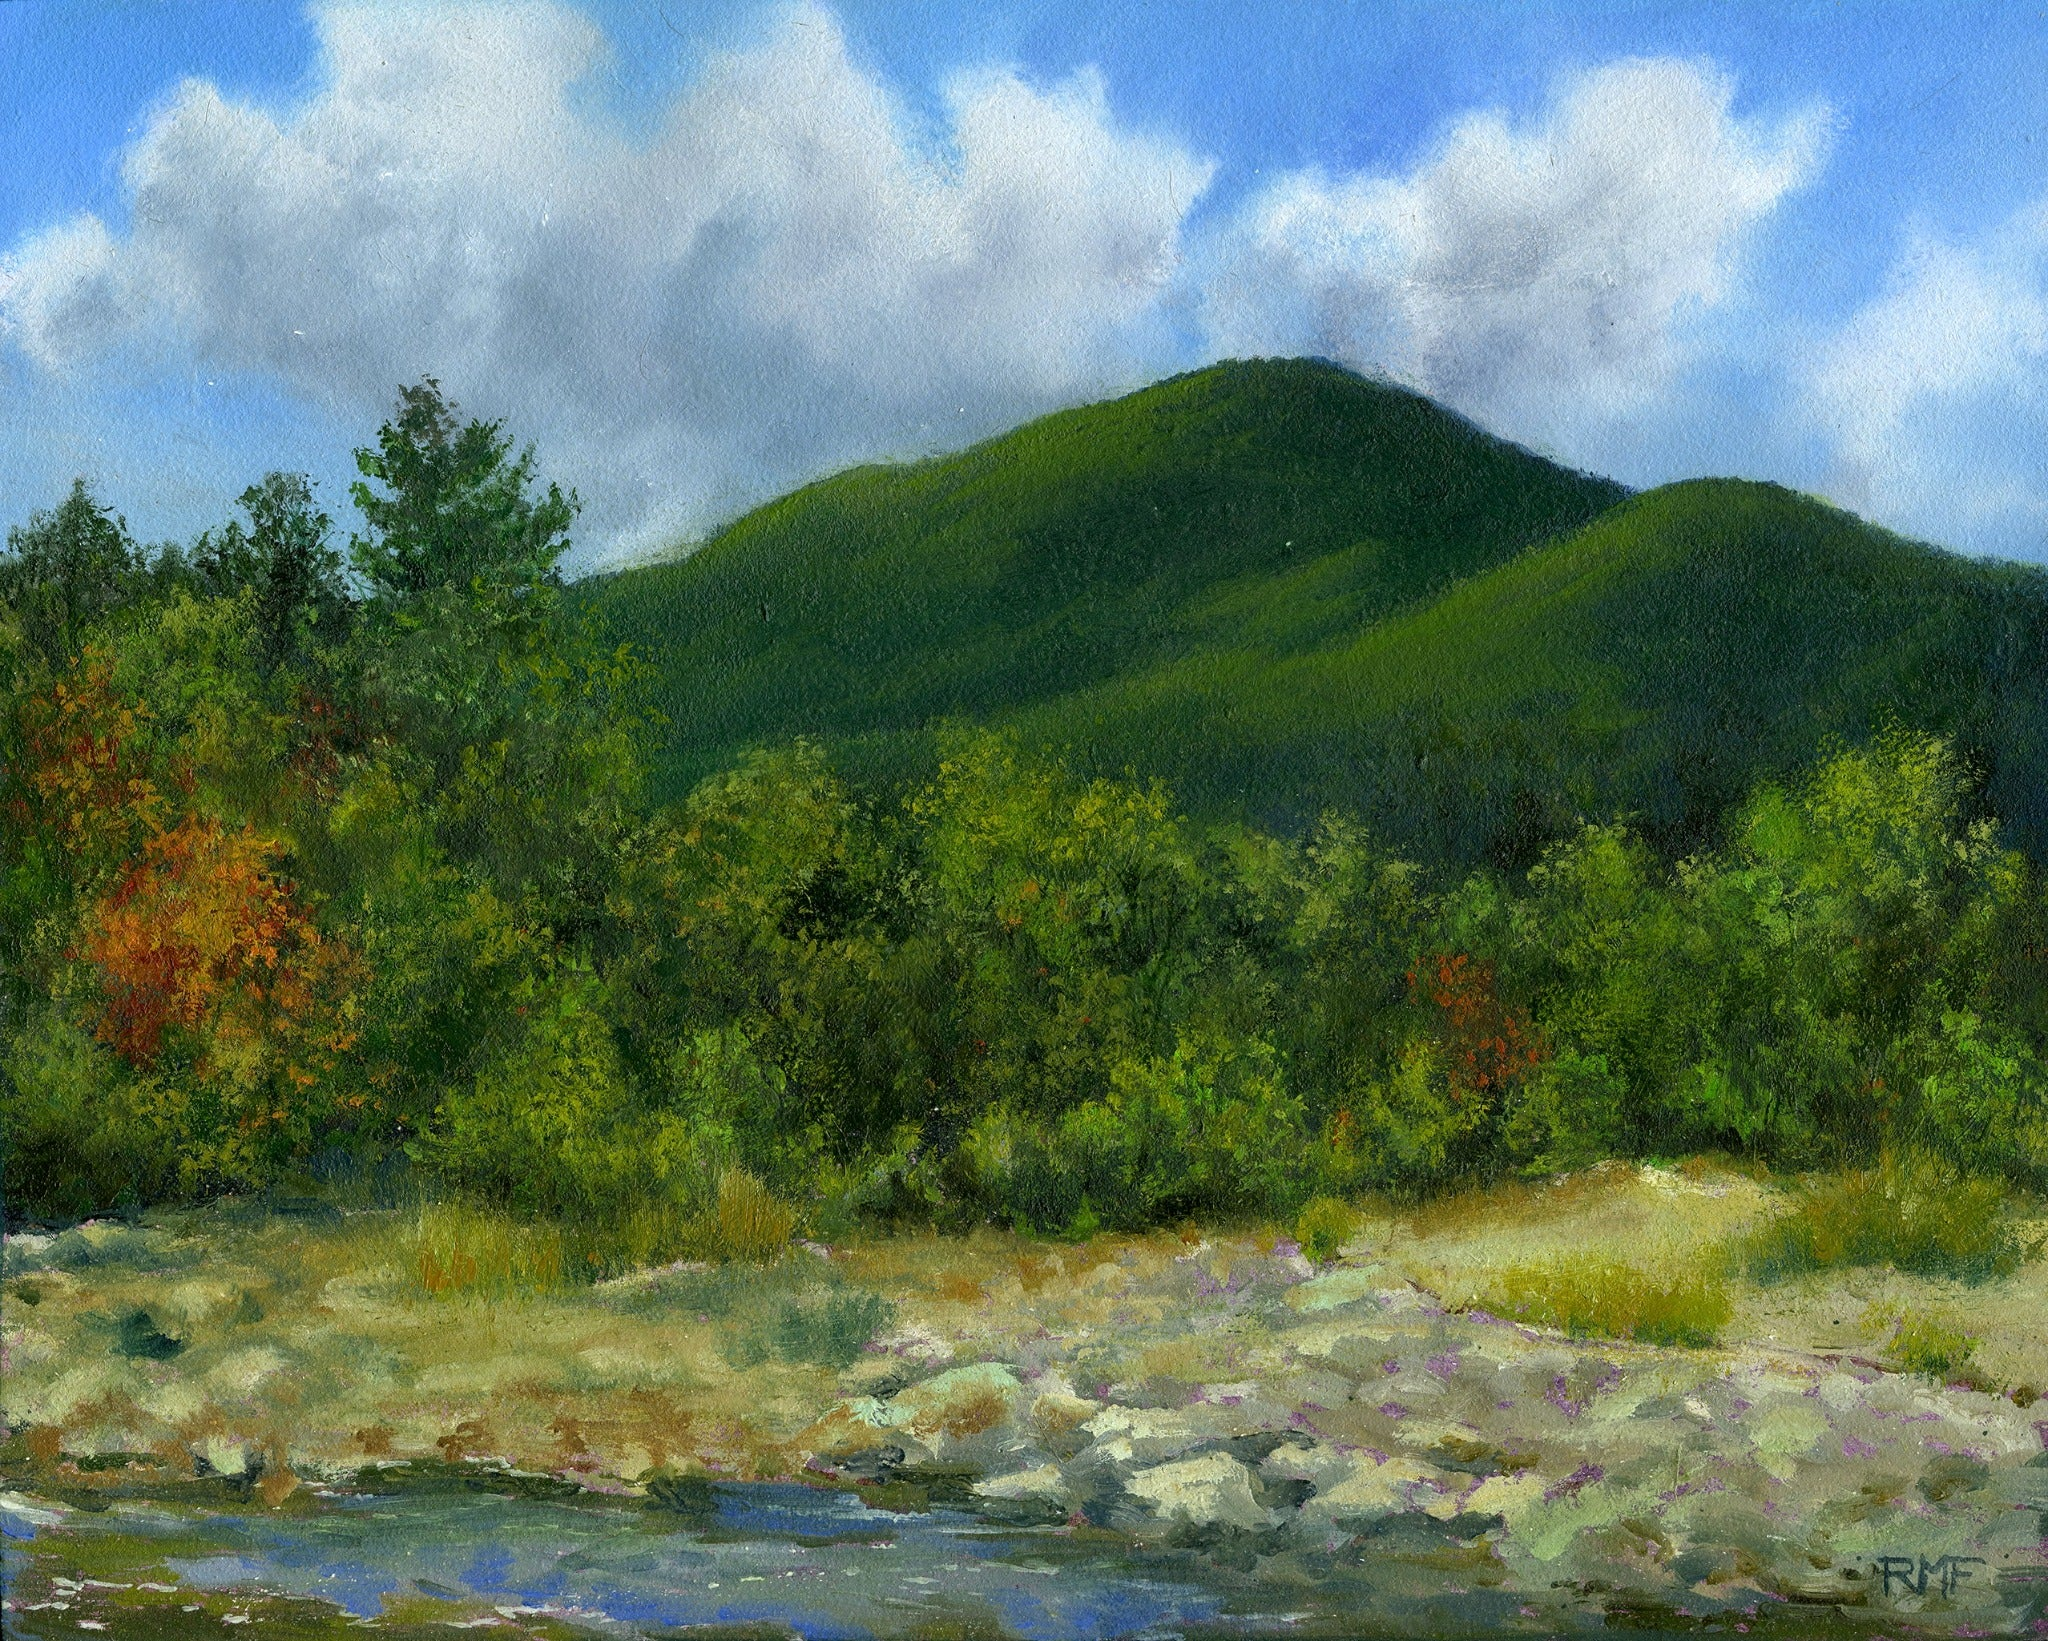 """Mount Hale"" is an 8 by 10 inch oil on panel painting by Rebecca M. Fullerton, depicting the mountain rising over the Zealand River Valley on a summer day, with trees, river rocks and water in the foreground."